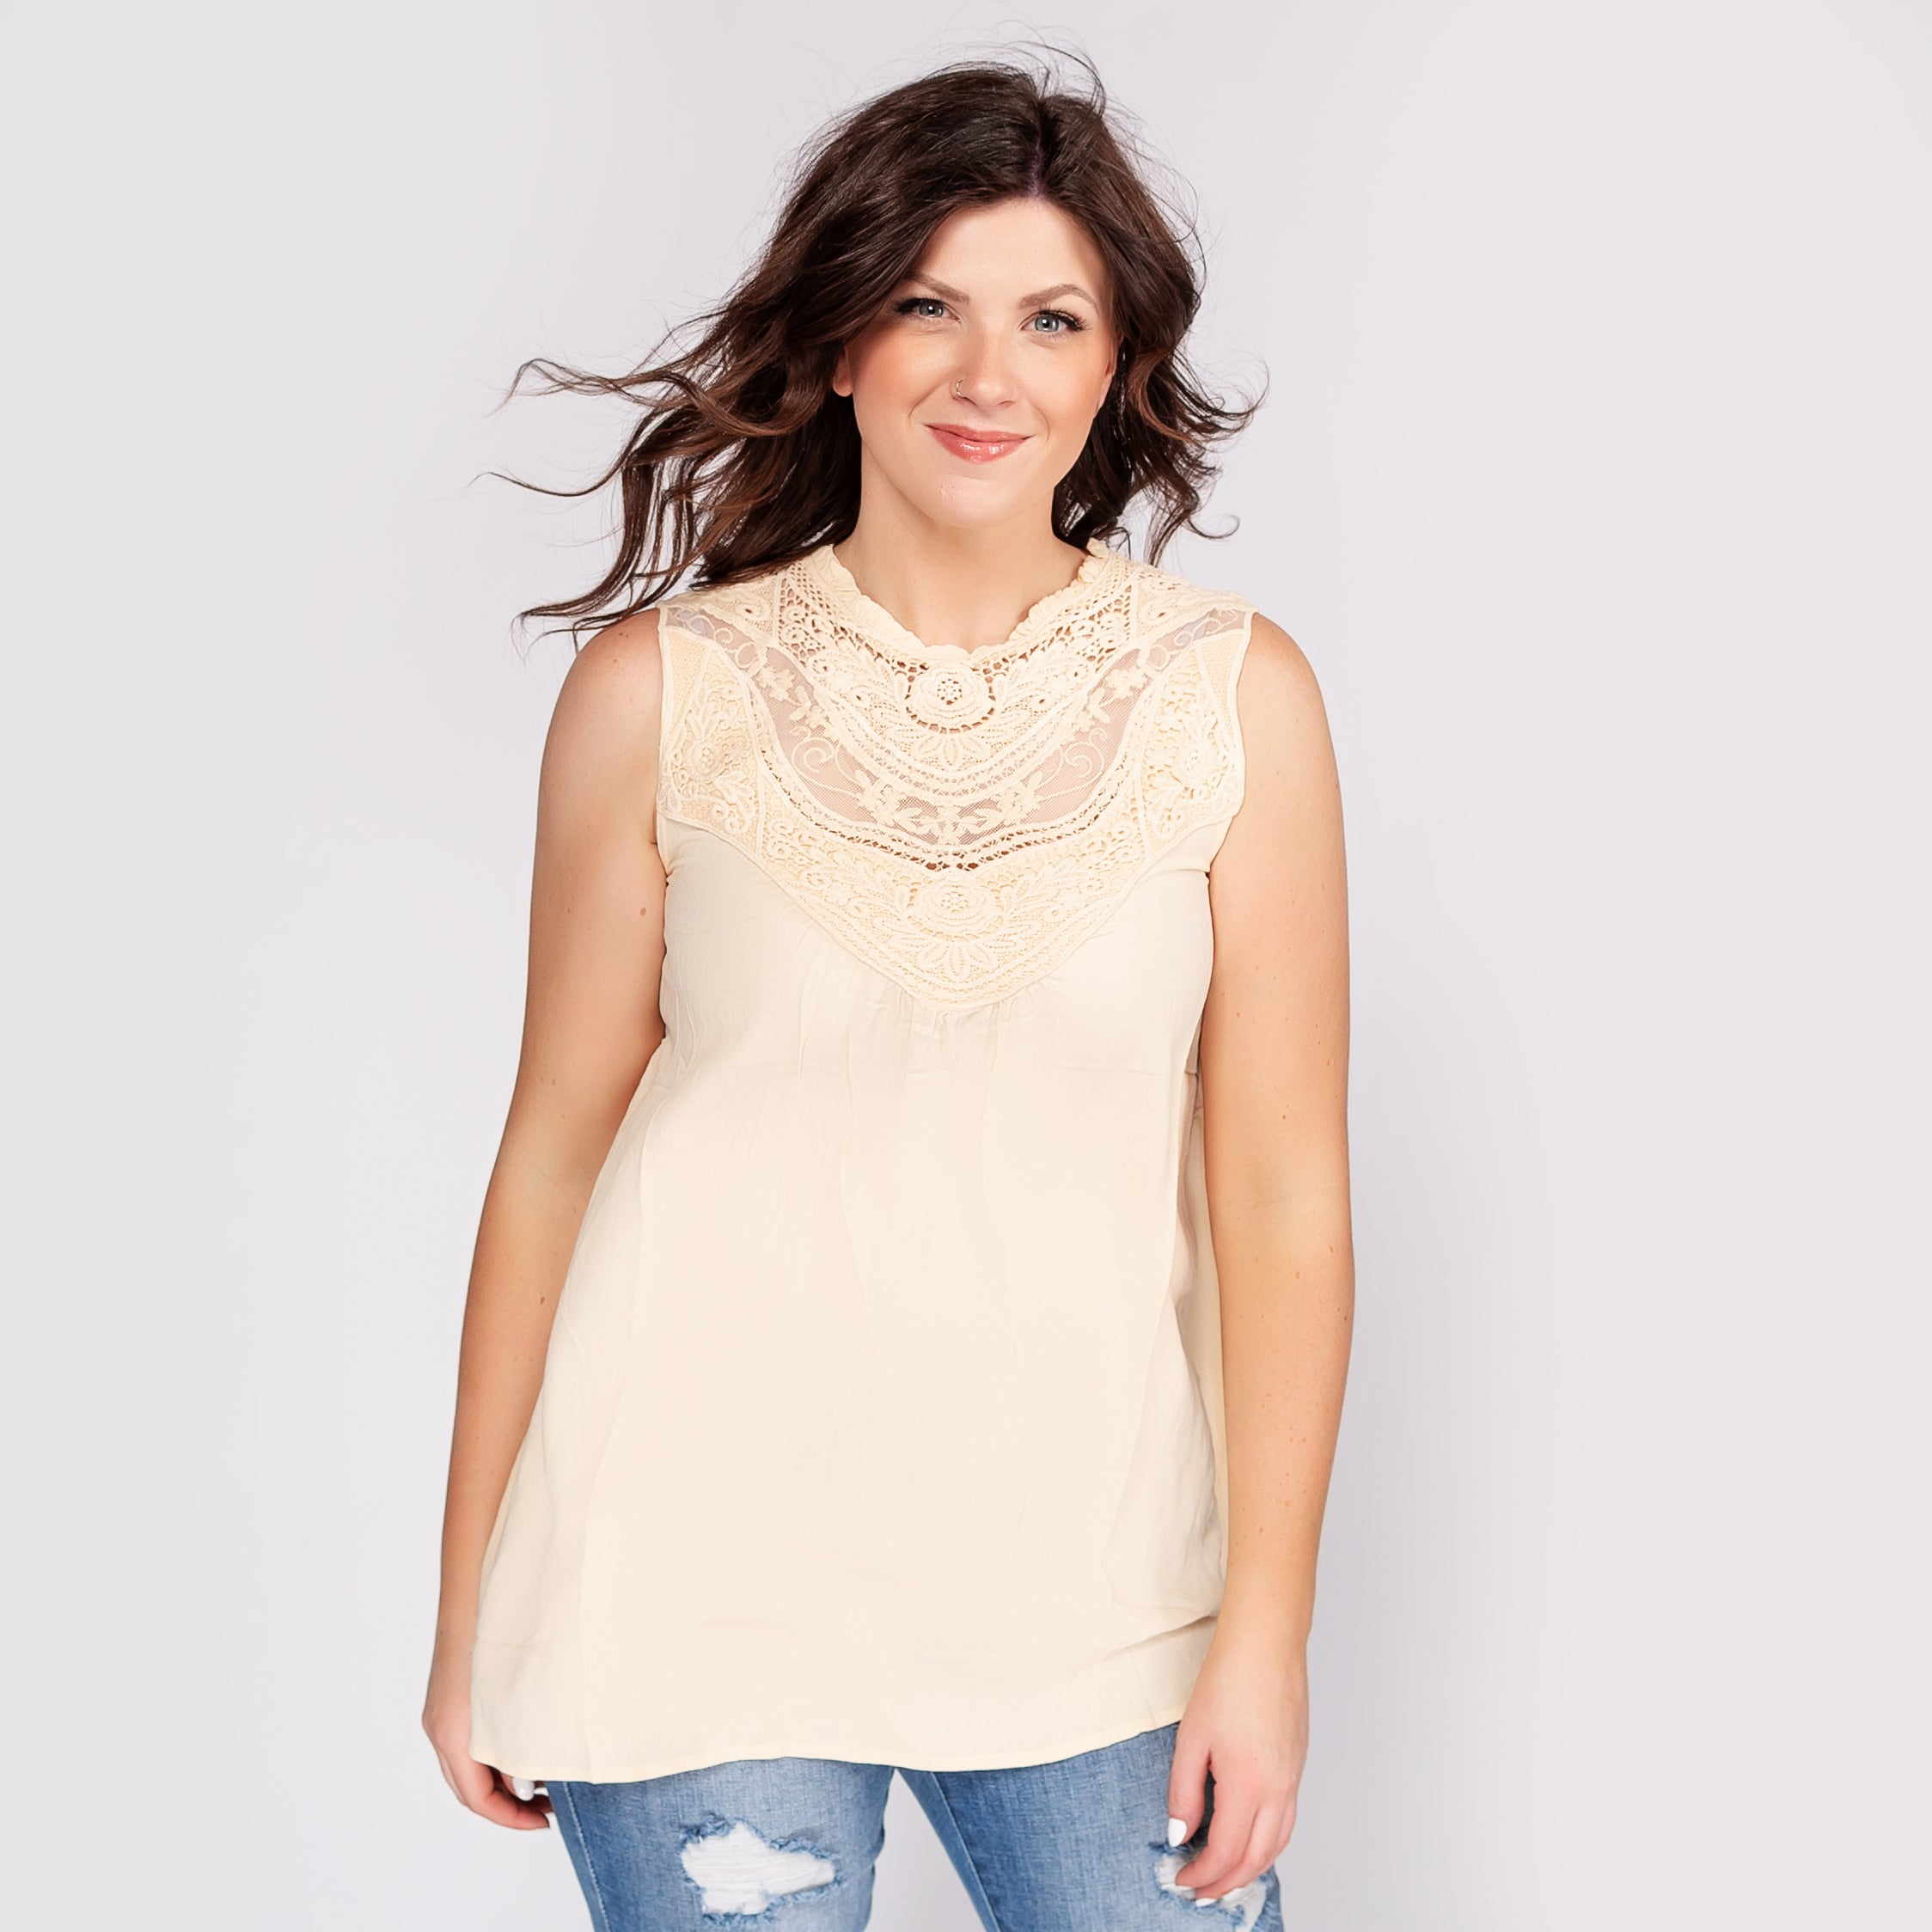 Sleeveless Top with a Vintage Boho Lace Accent Yoke